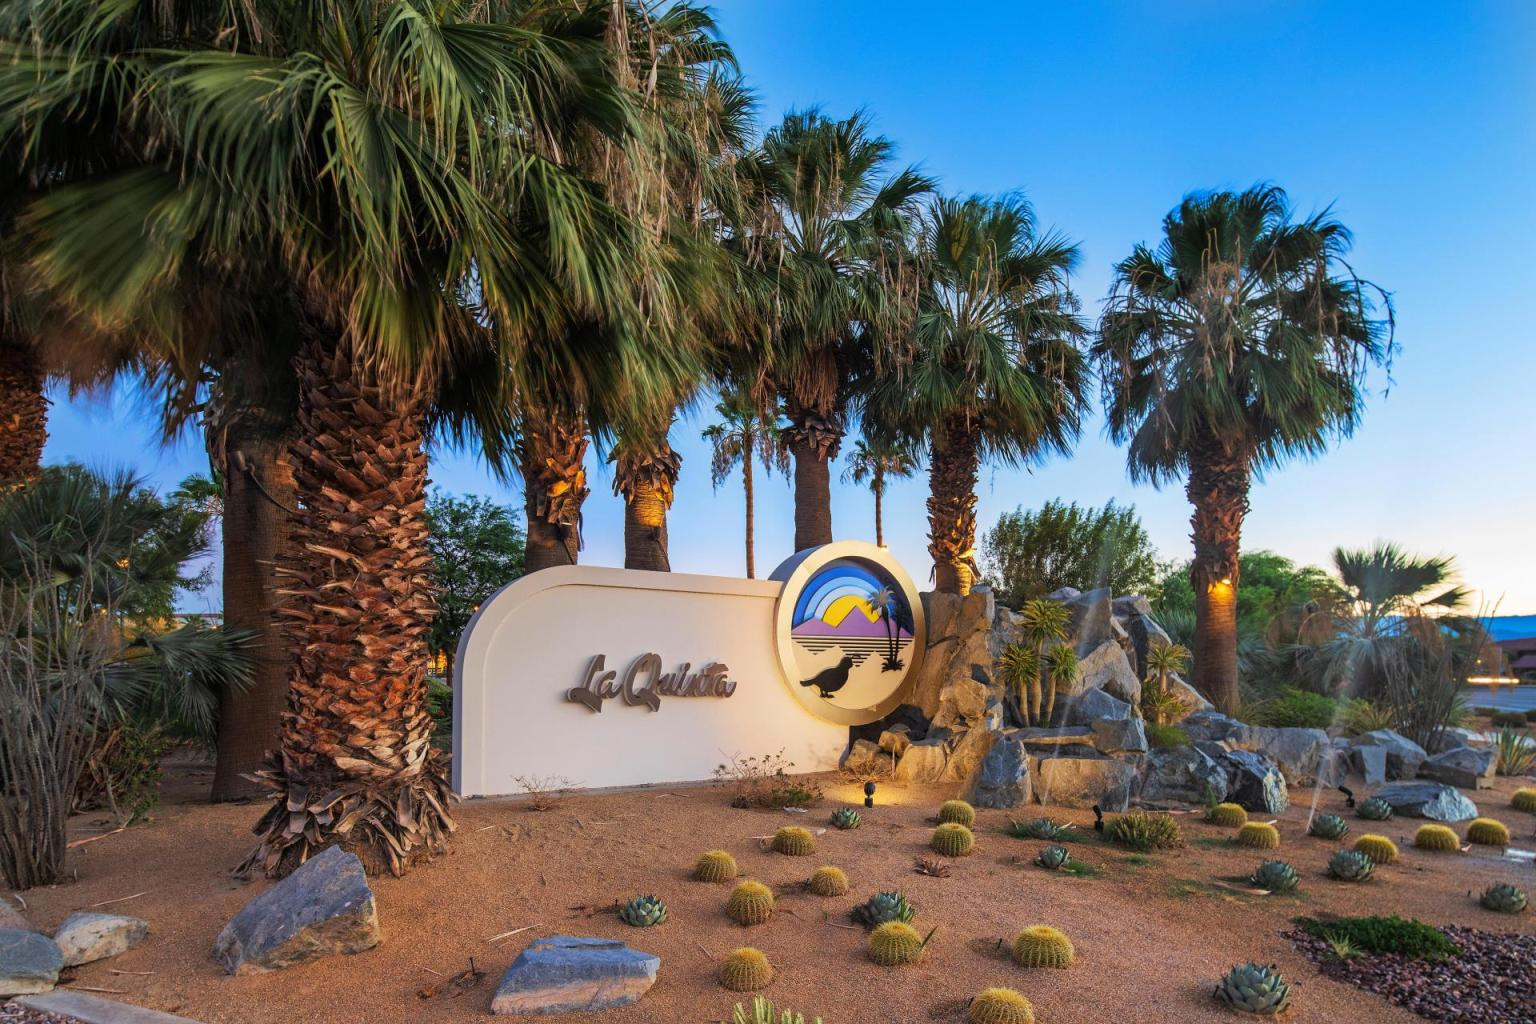 La Quinta Celebrates Reopening Without COVID Restrictions